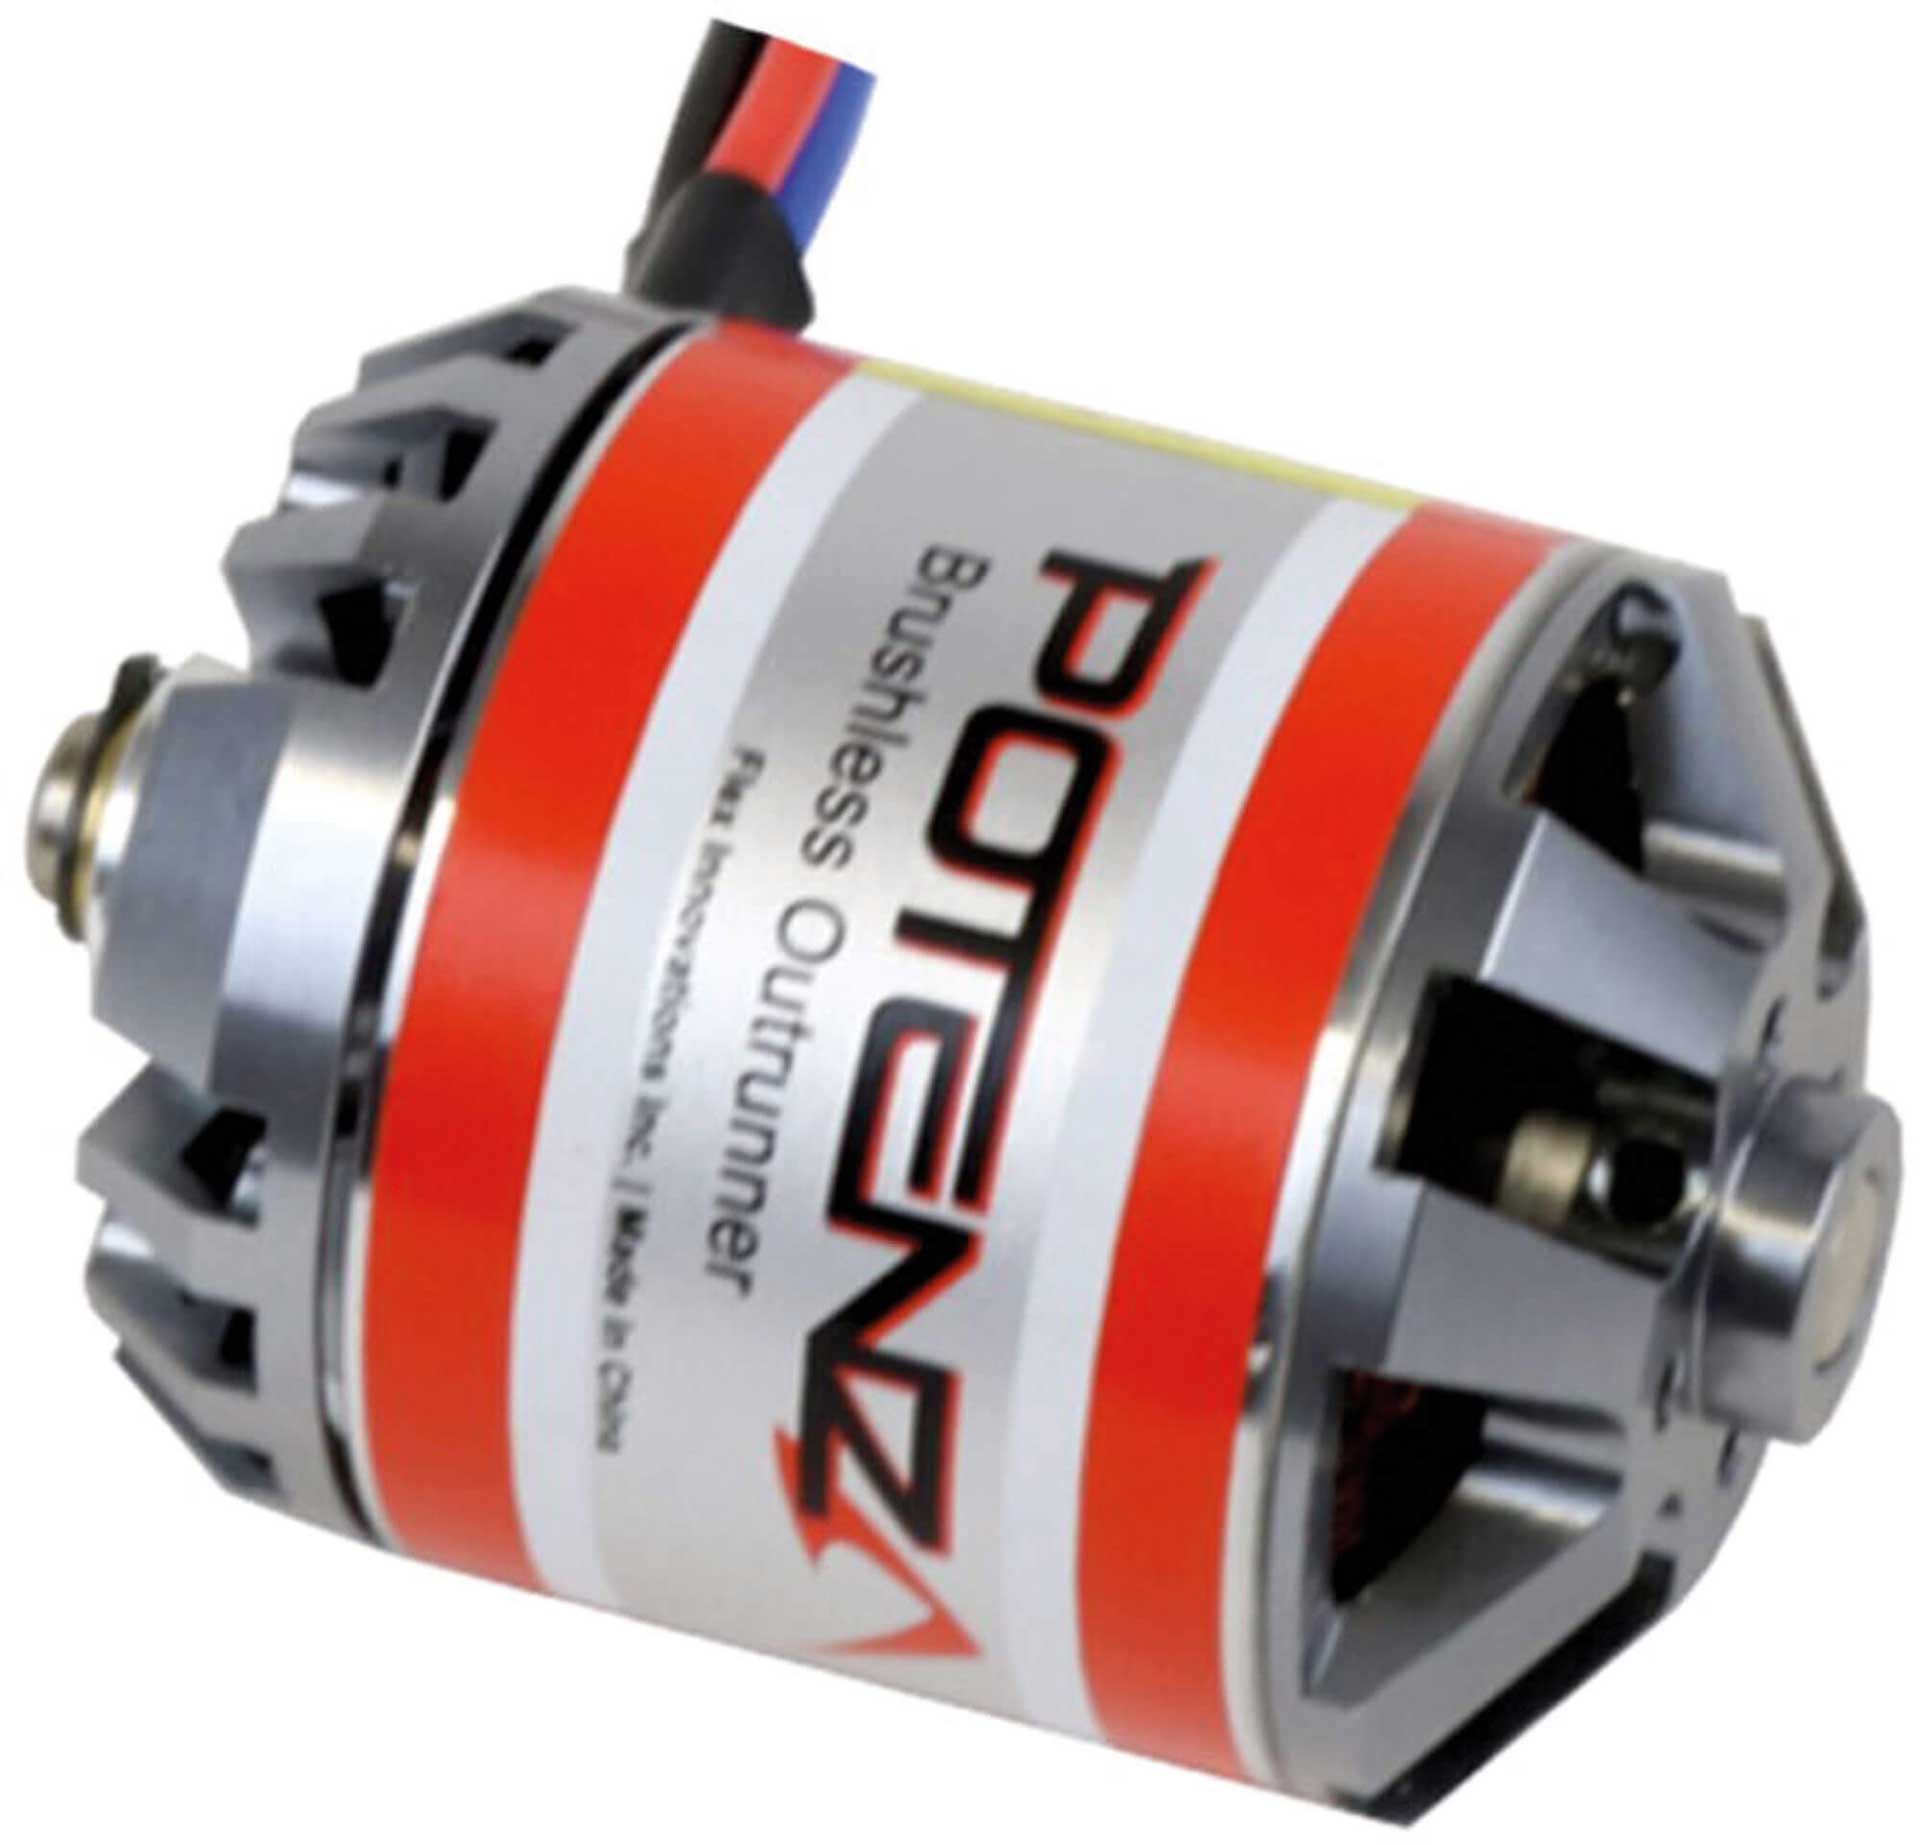 PREMIER AIRCRAFT POTENZA 70 500 KV BL BRUSHLESS ENGINE